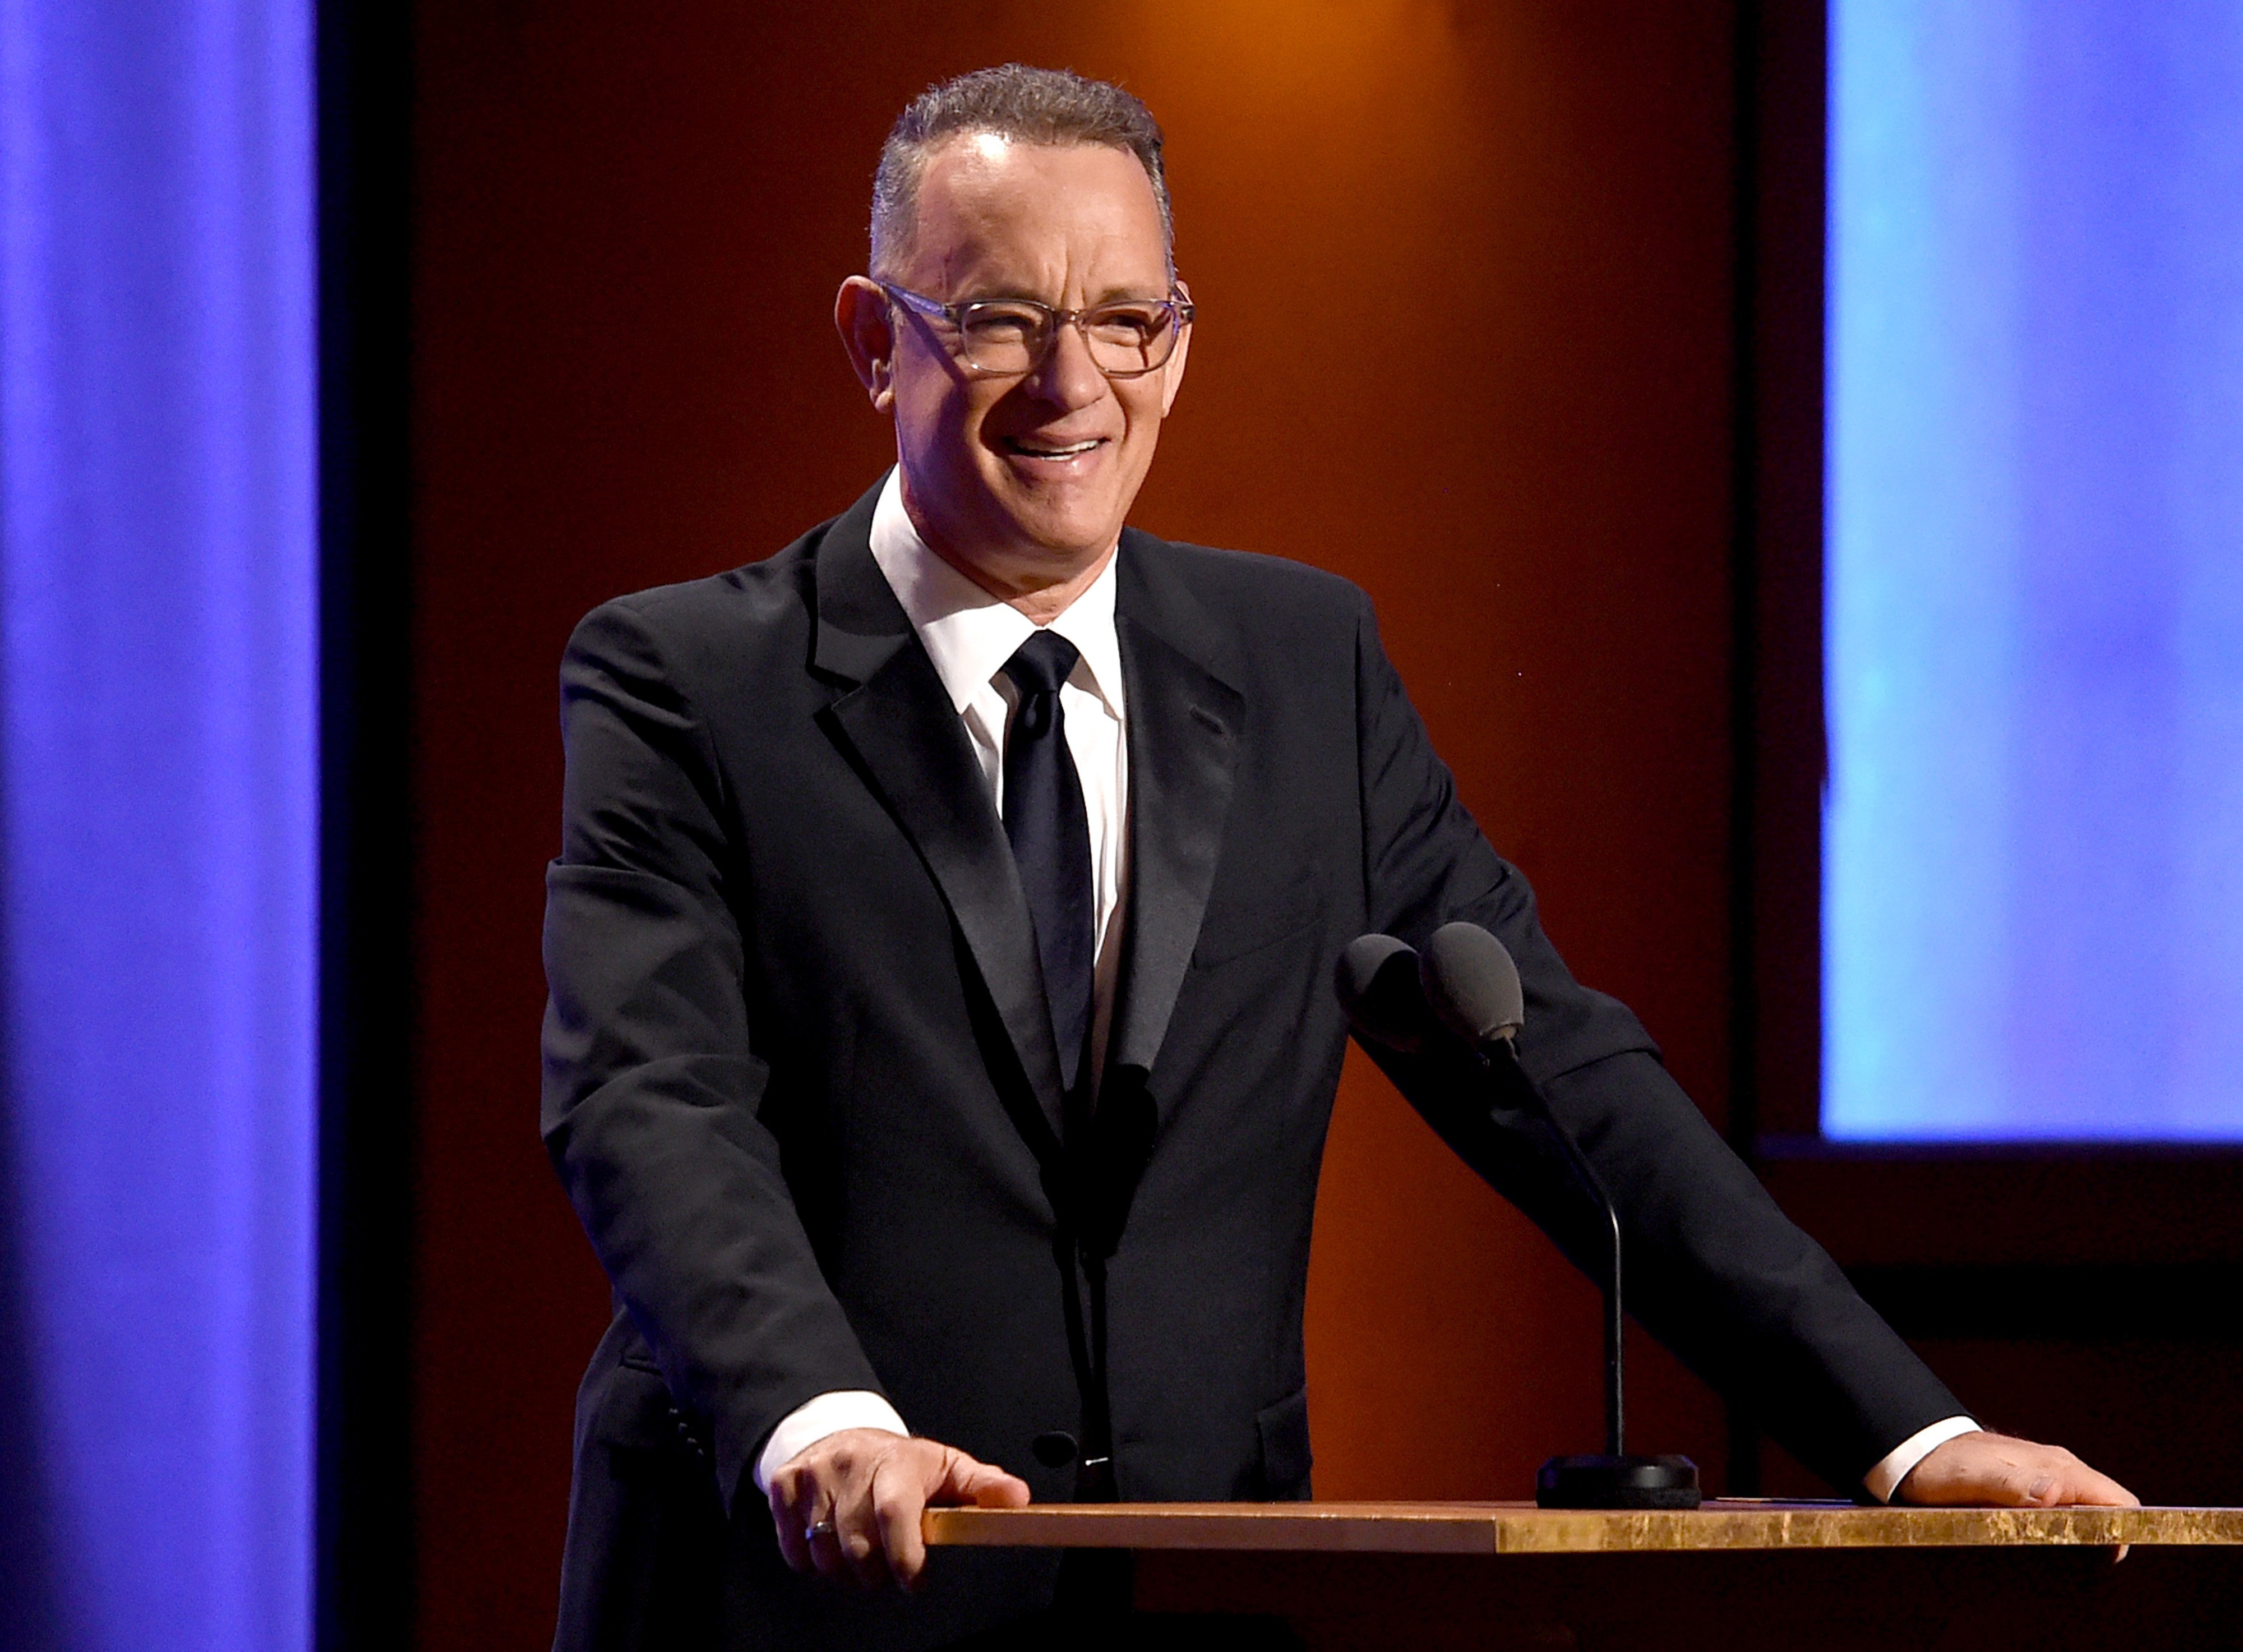 Tom Hanks speaks onstage during the Academy of Motion Picture Arts and Sciences' 10th annual Governors Awards on November 18, 2018, in Hollywood, California. | Source: Getty Images.